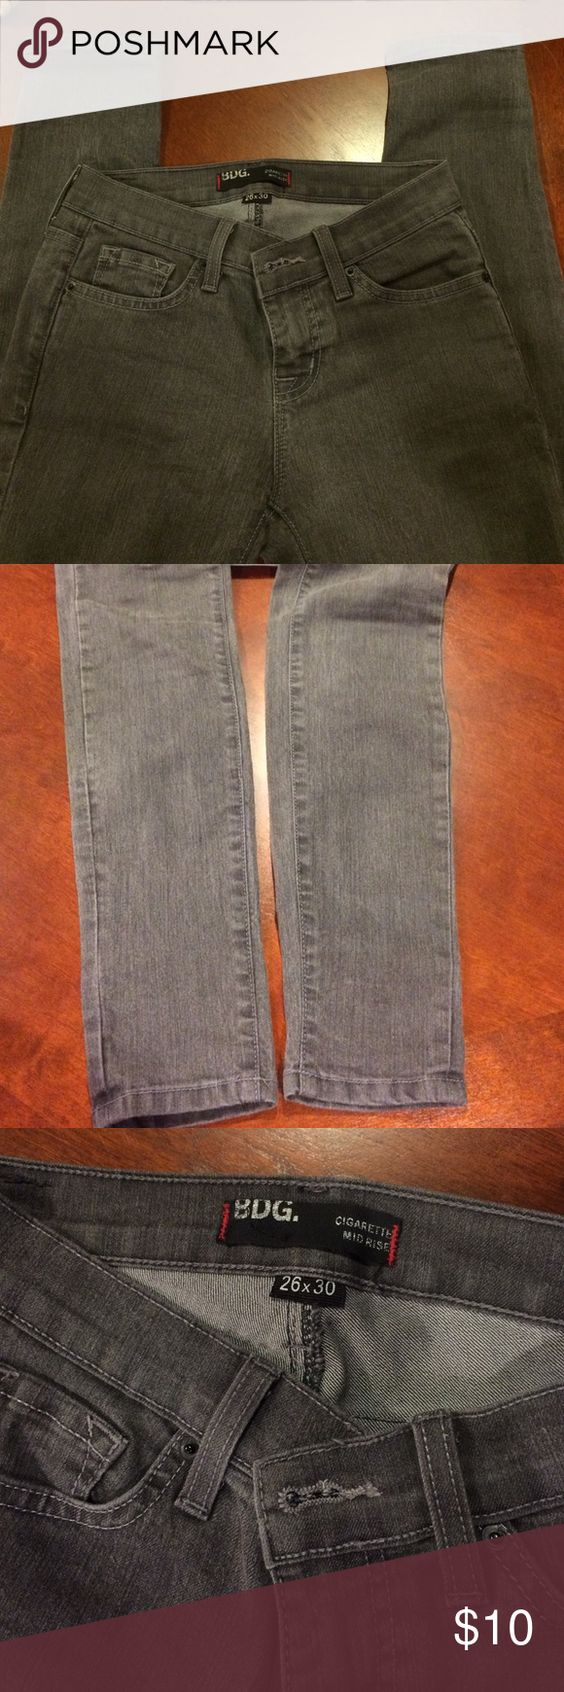 Skinny Jeans Urban Outfitters ash gray skinny jeans. Worn only once or twice, in great condition. Size 26 BDG Jeans Skinny